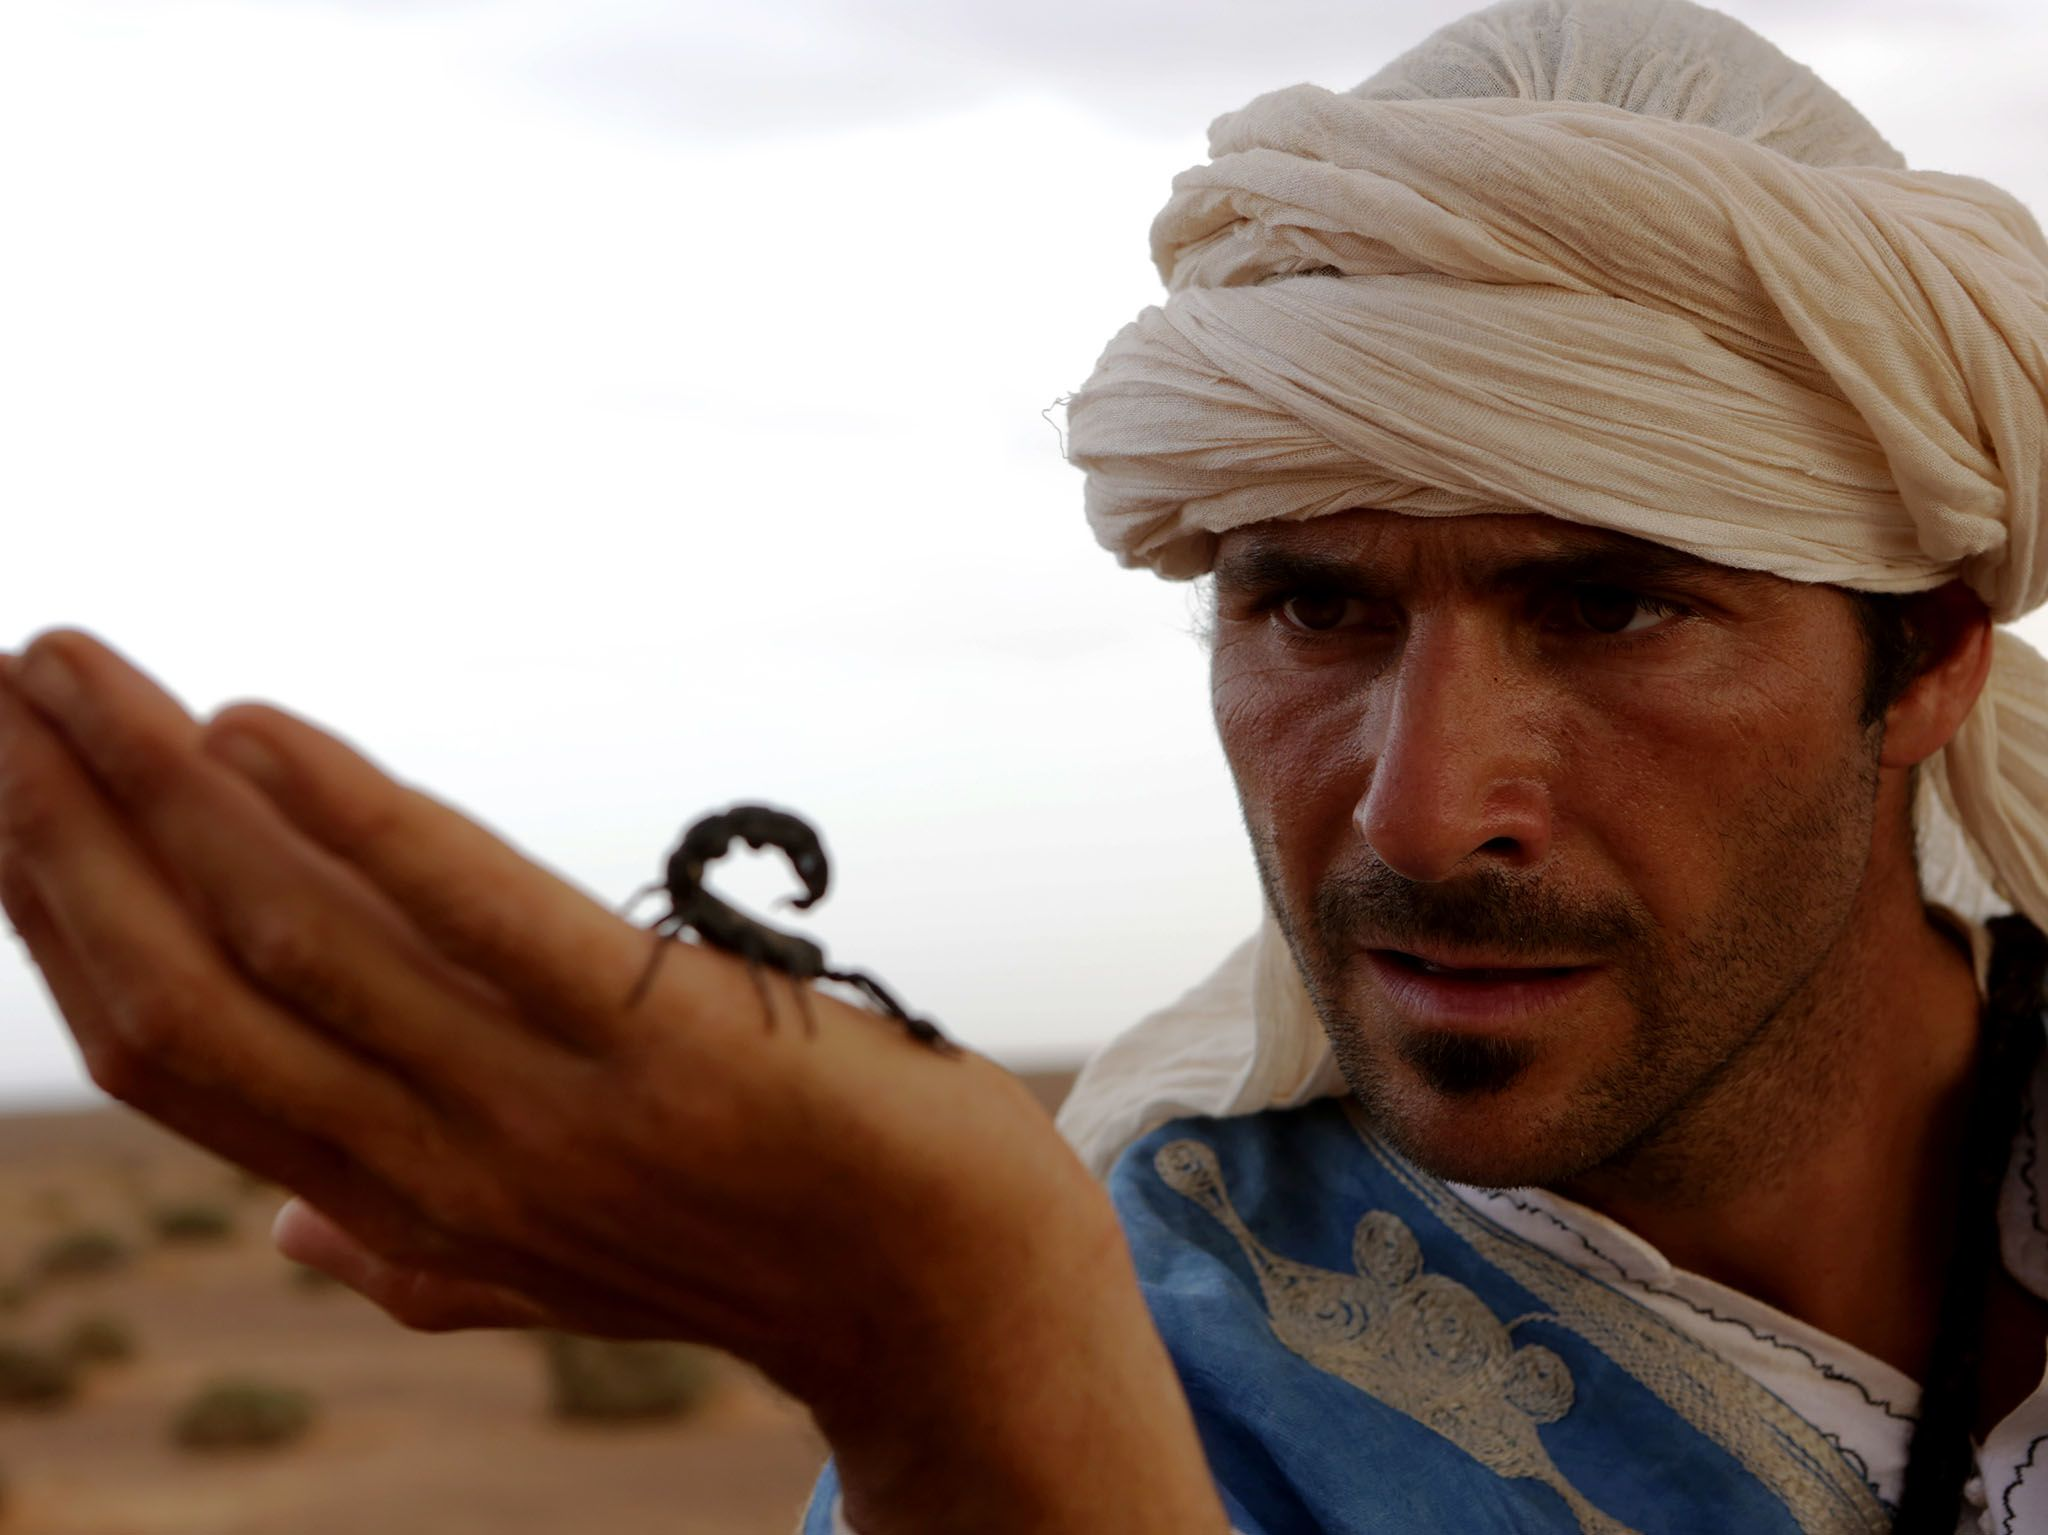 Morocco: Hazen holds a poisonous scorpion. This image is from Primal Survivor. [Photo of the day - May 2017]